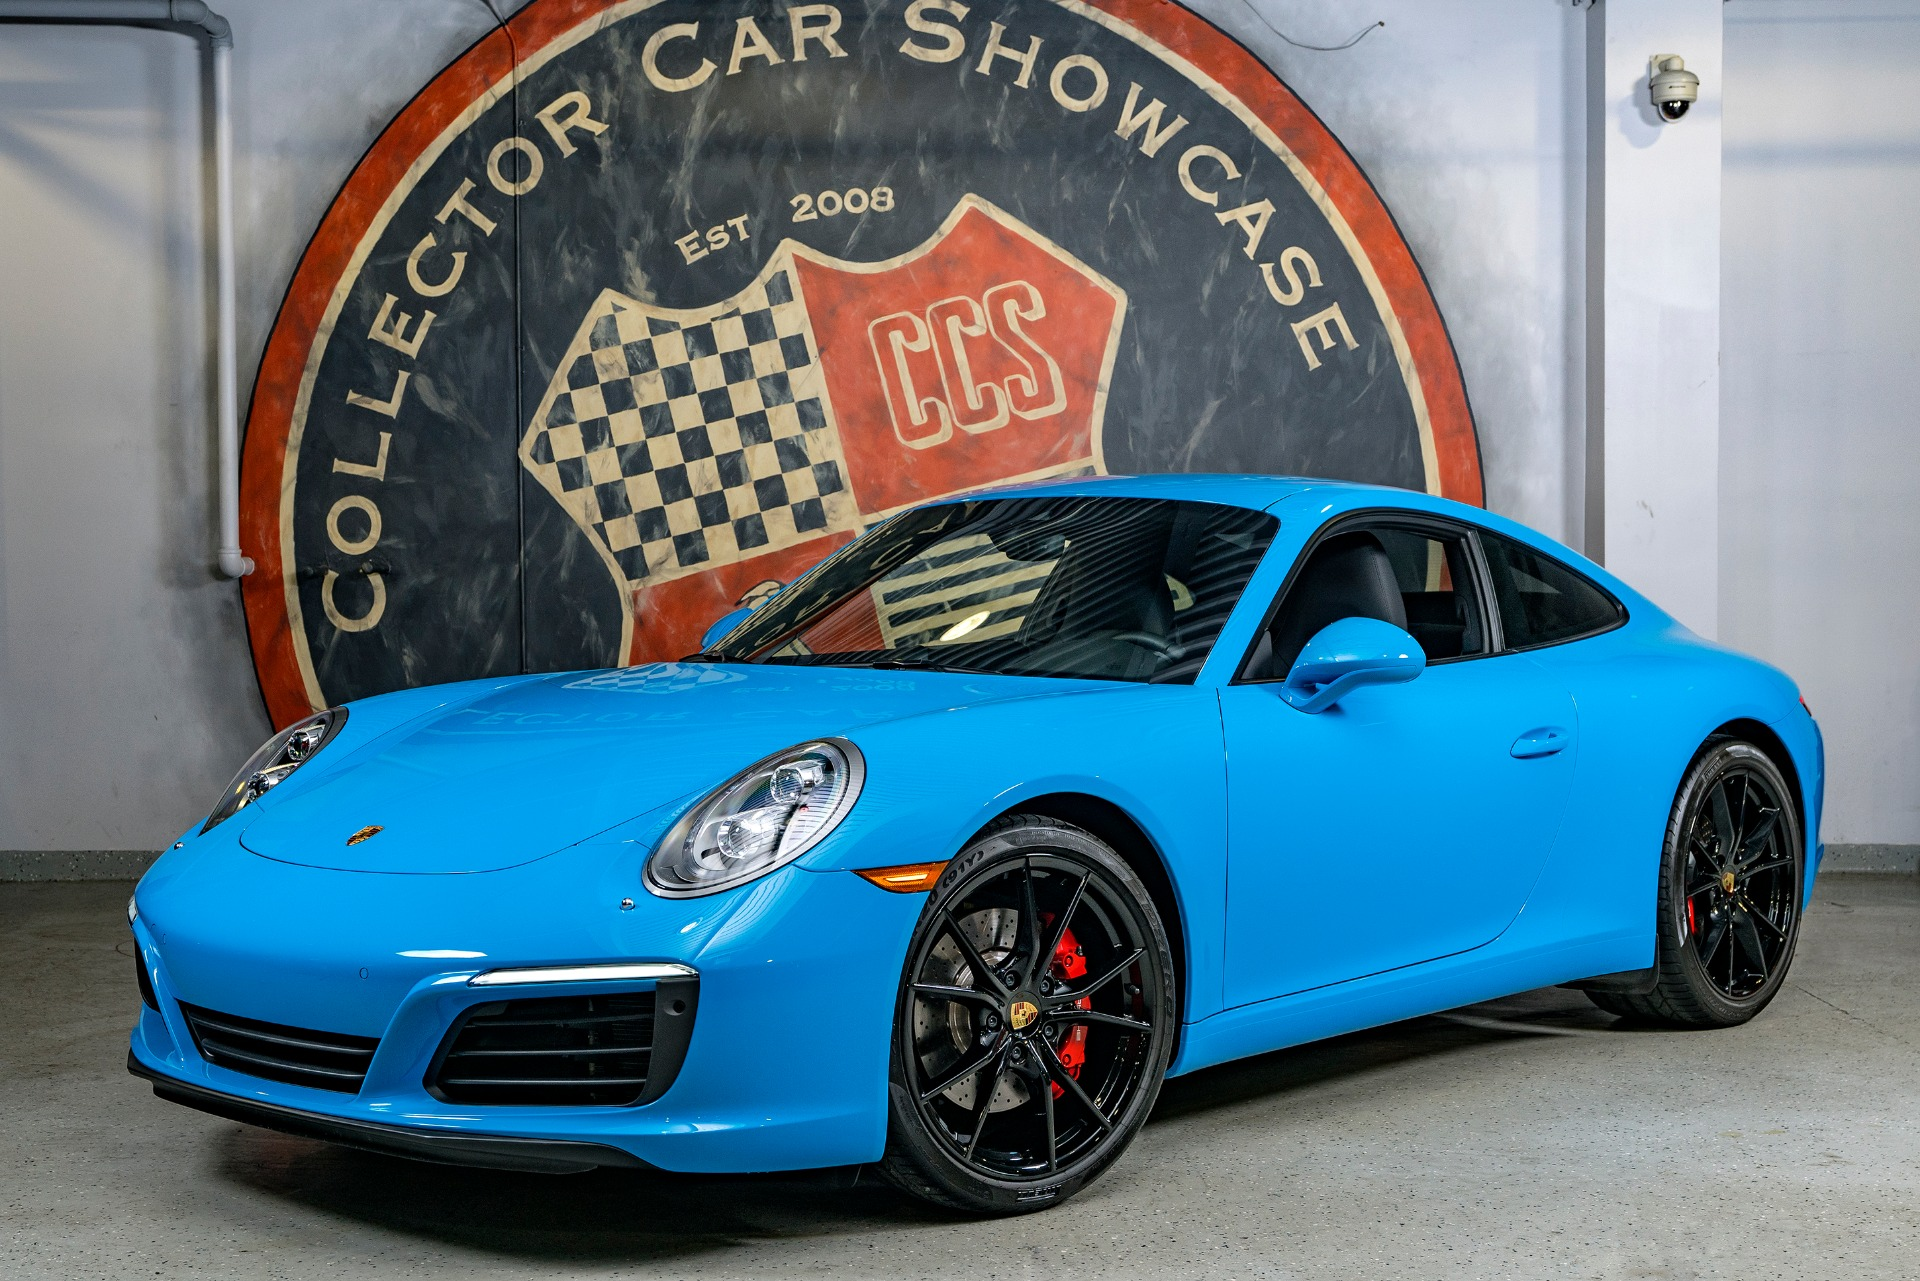 2017 Porsche 911 Carrera S Stock 1503 For Sale Near Oyster Bay Ny